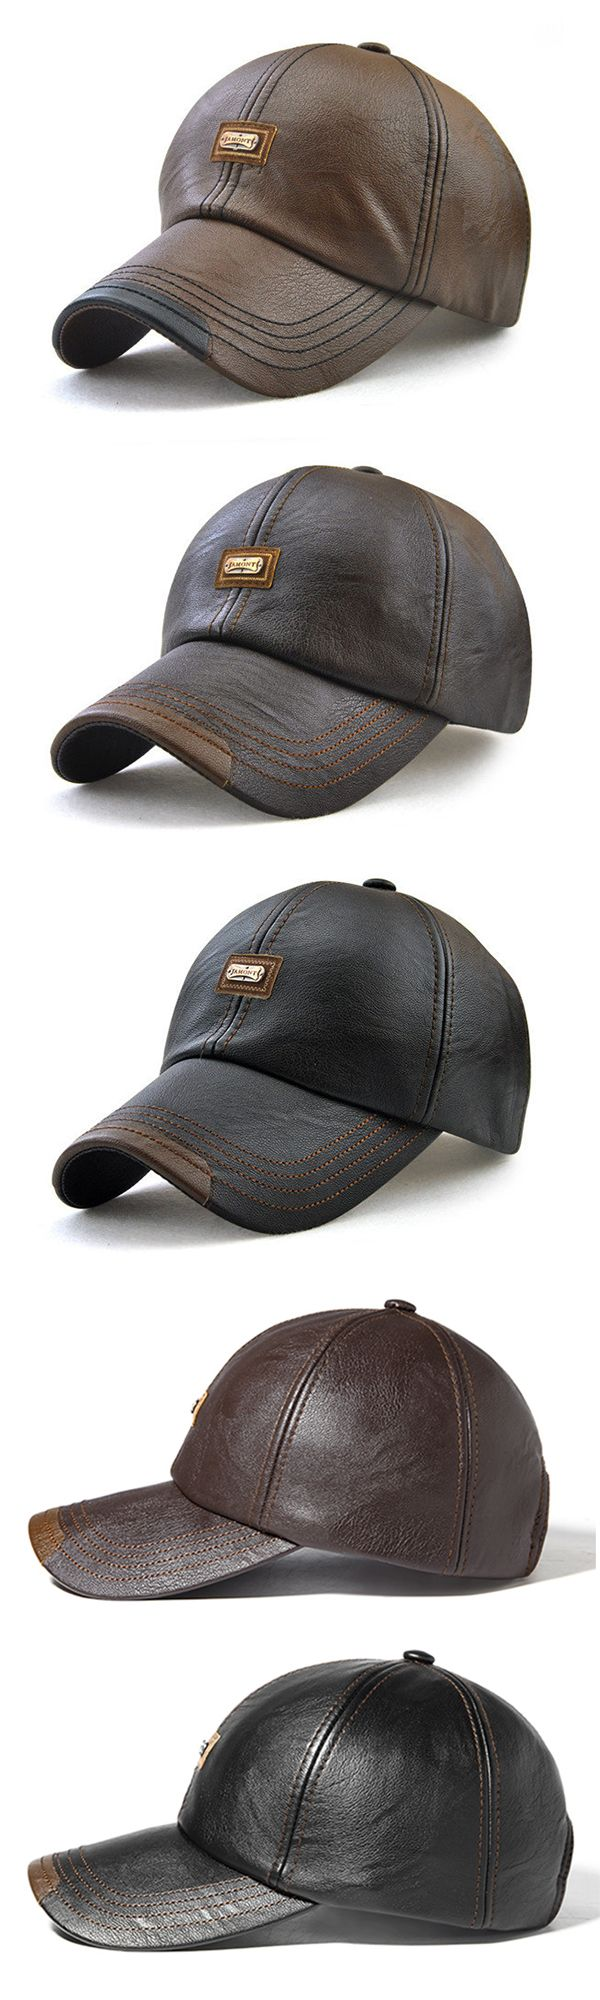 Men Leather Baseball Cap: Windproof